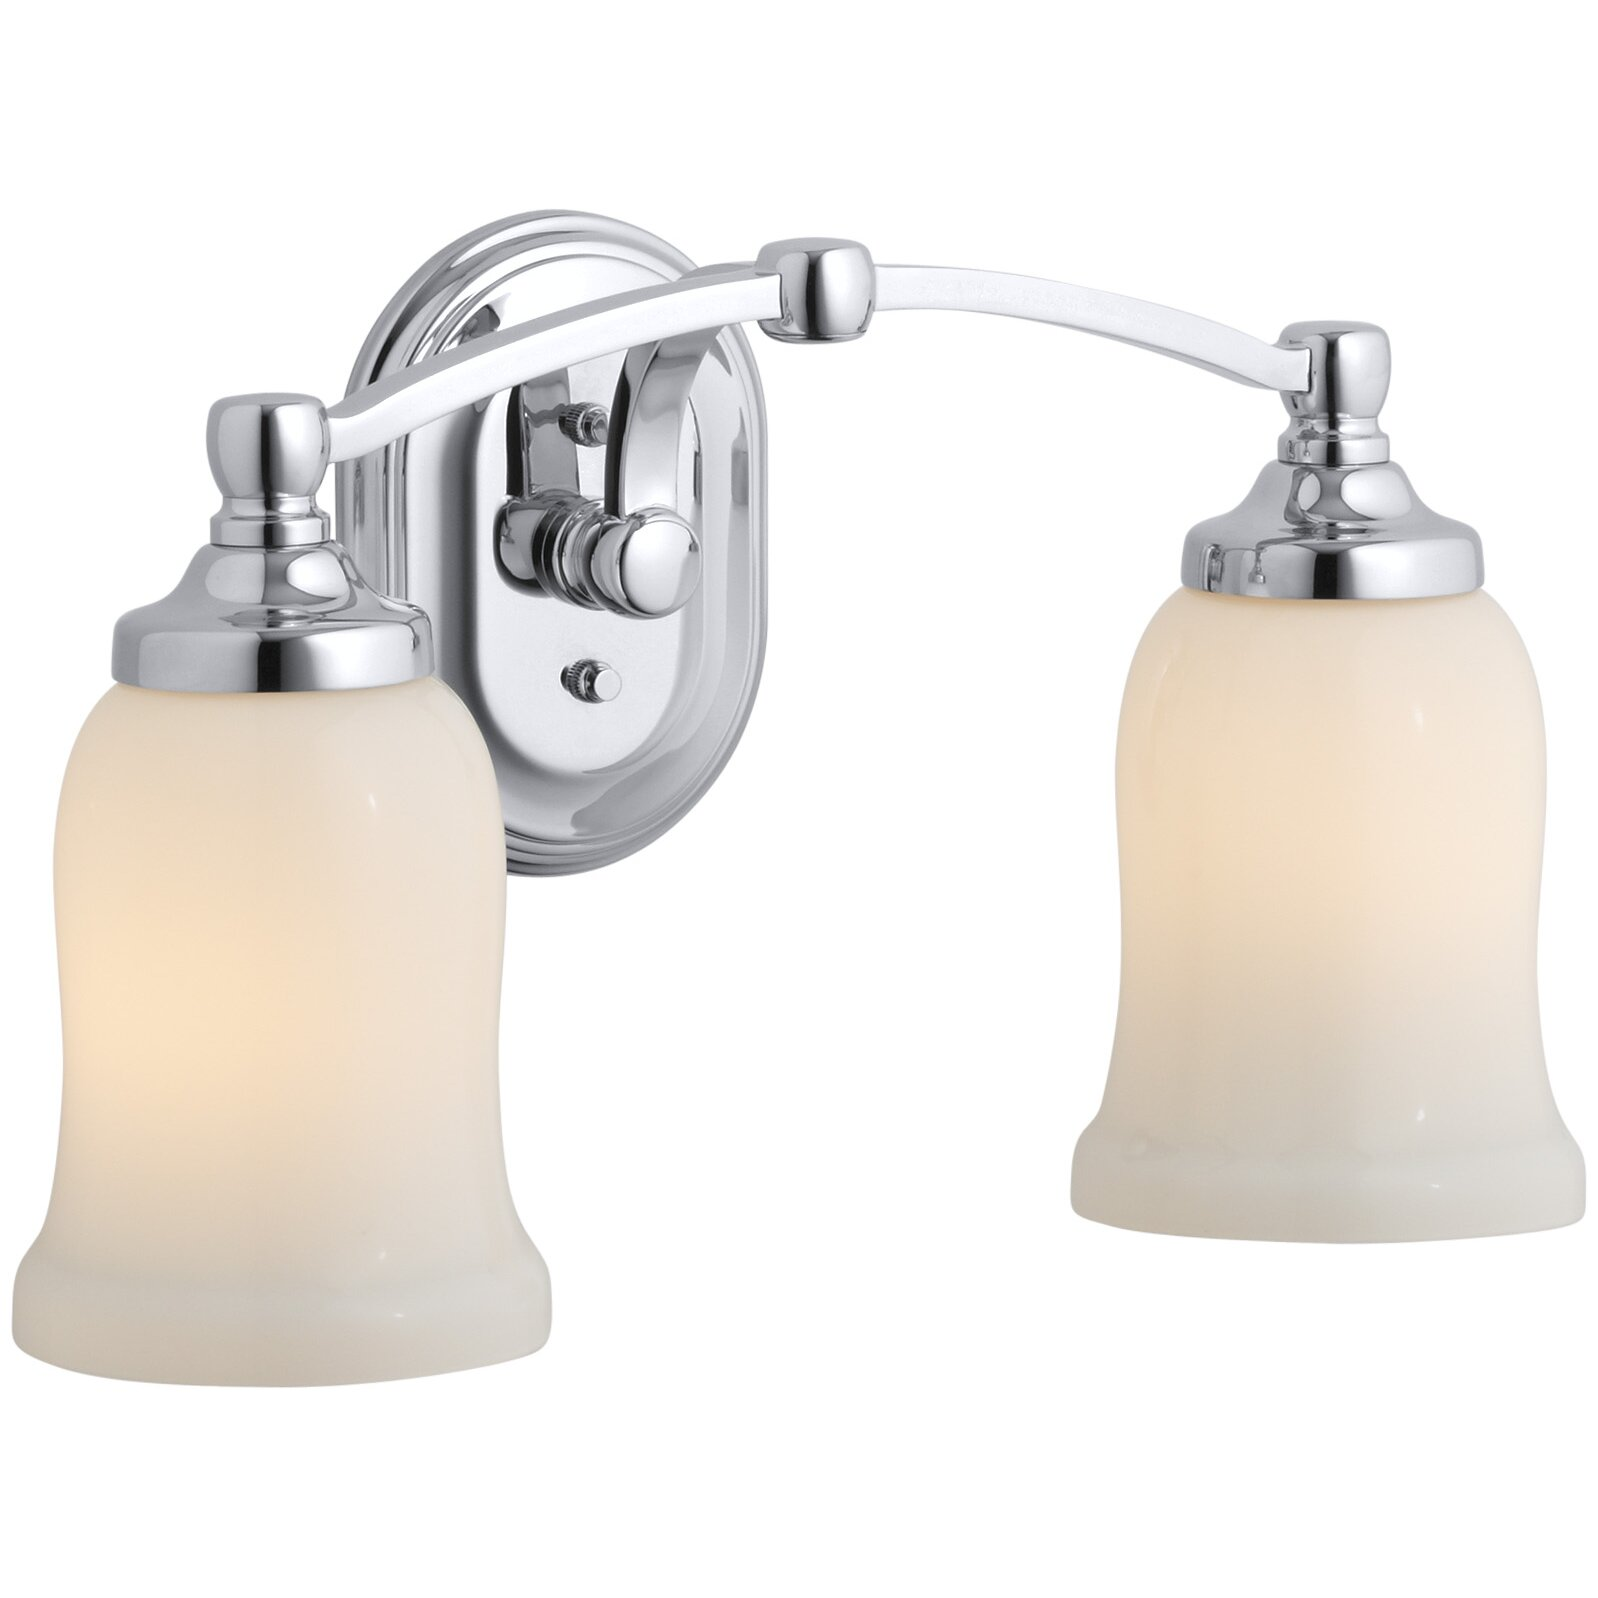 Kohler Bathroom Vanity Lights : Kohler Bancroft 2 Light Vanity Light & Reviews Wayfair